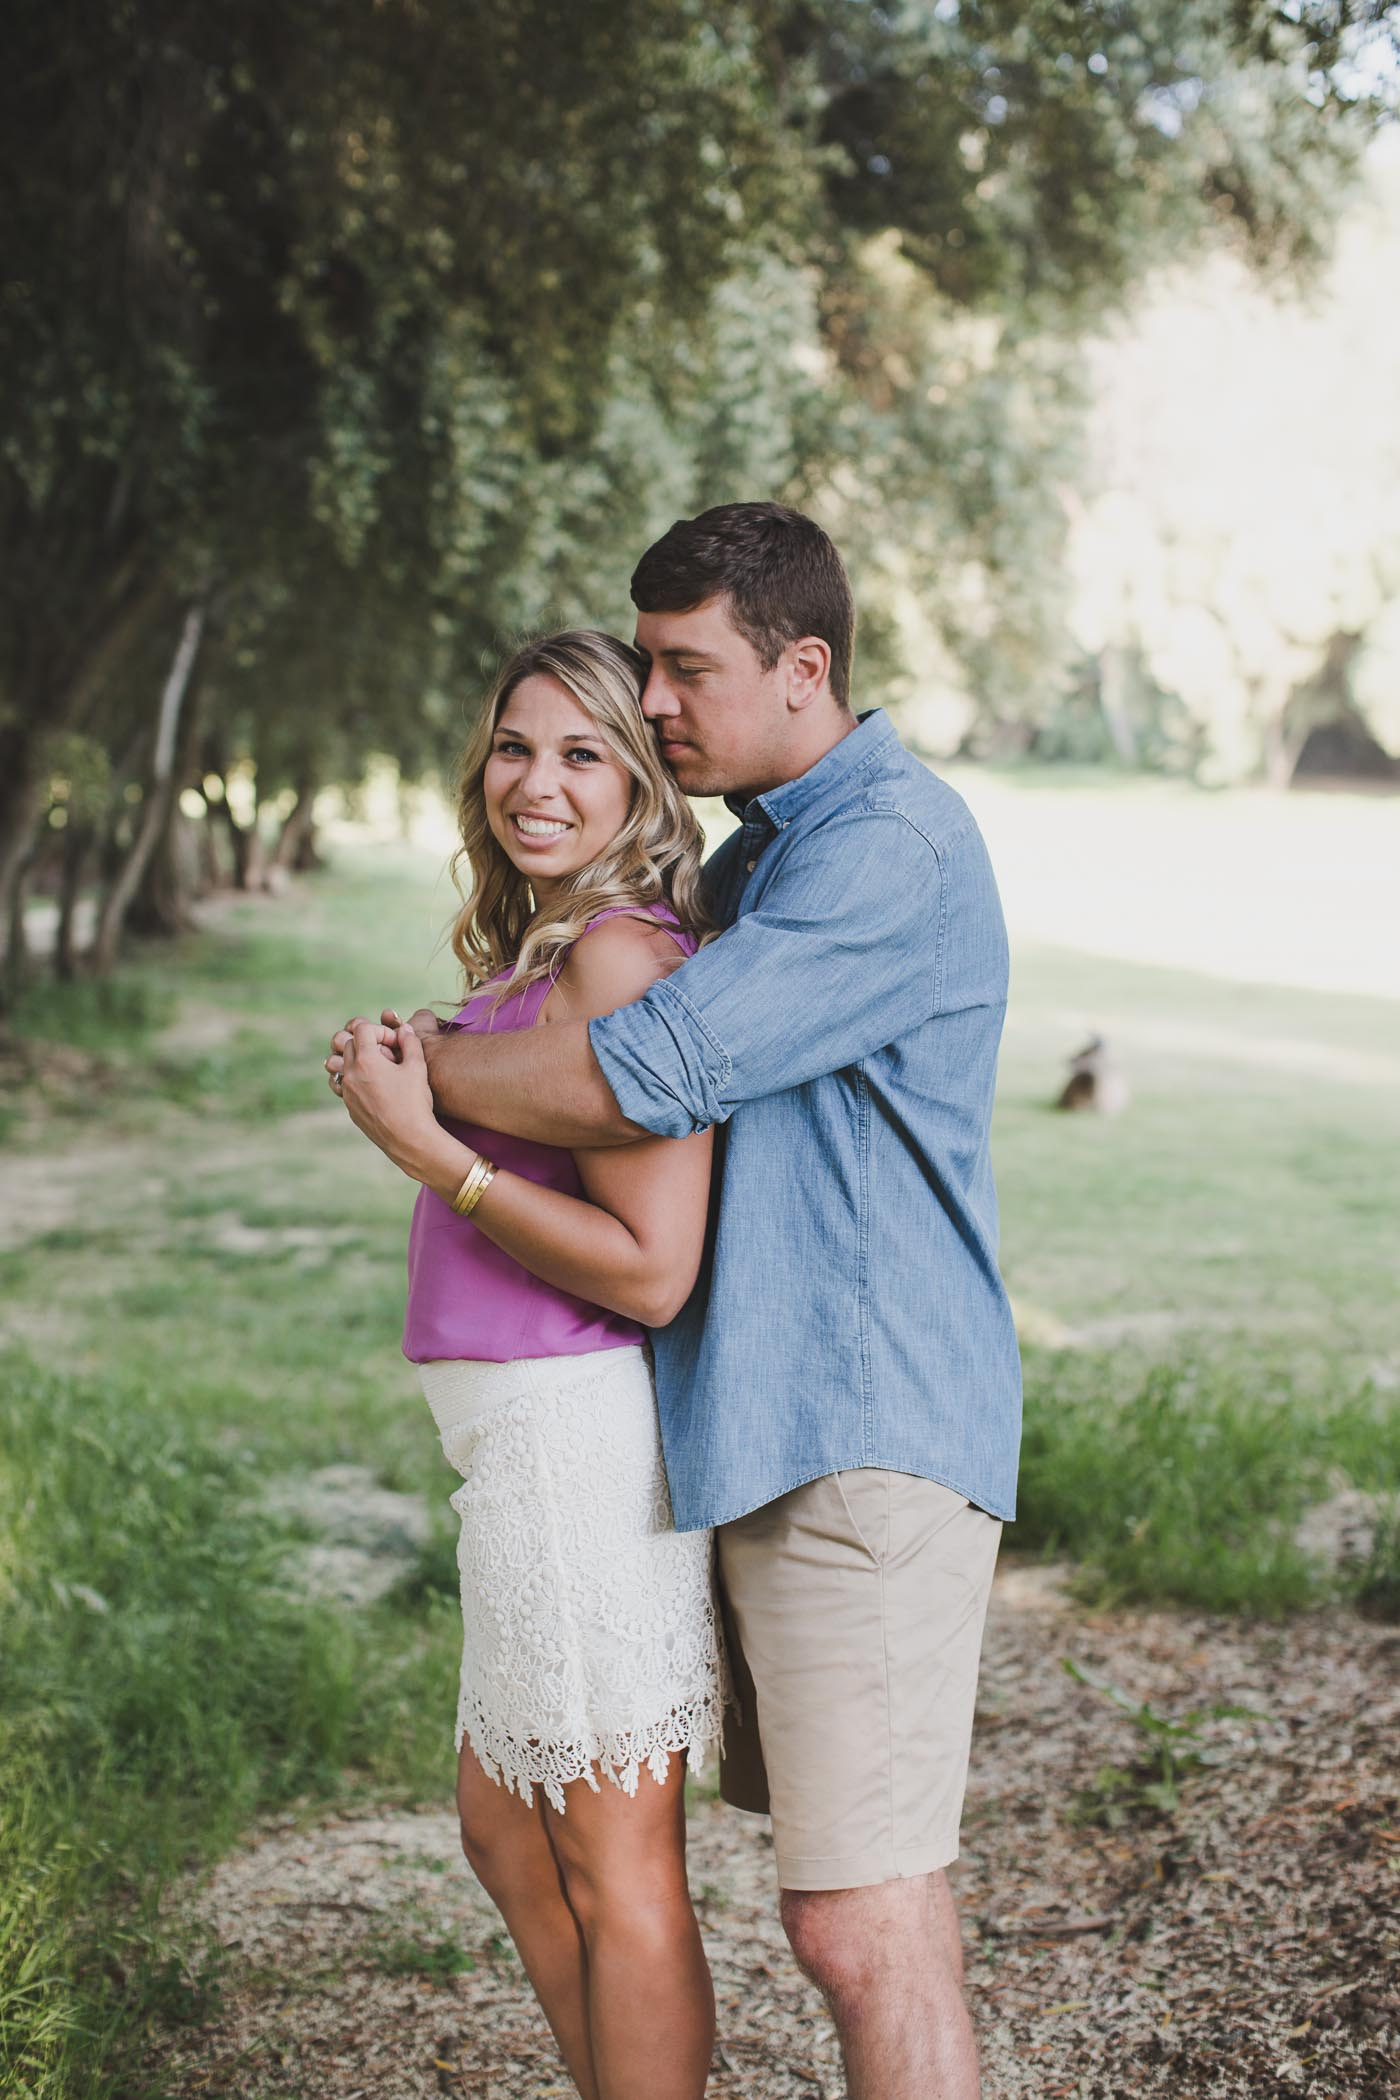 AVH_Photography_upper_bidwell_park_engagement_photography_chico_california_spring_bidwell_golf_course_0010.jpg